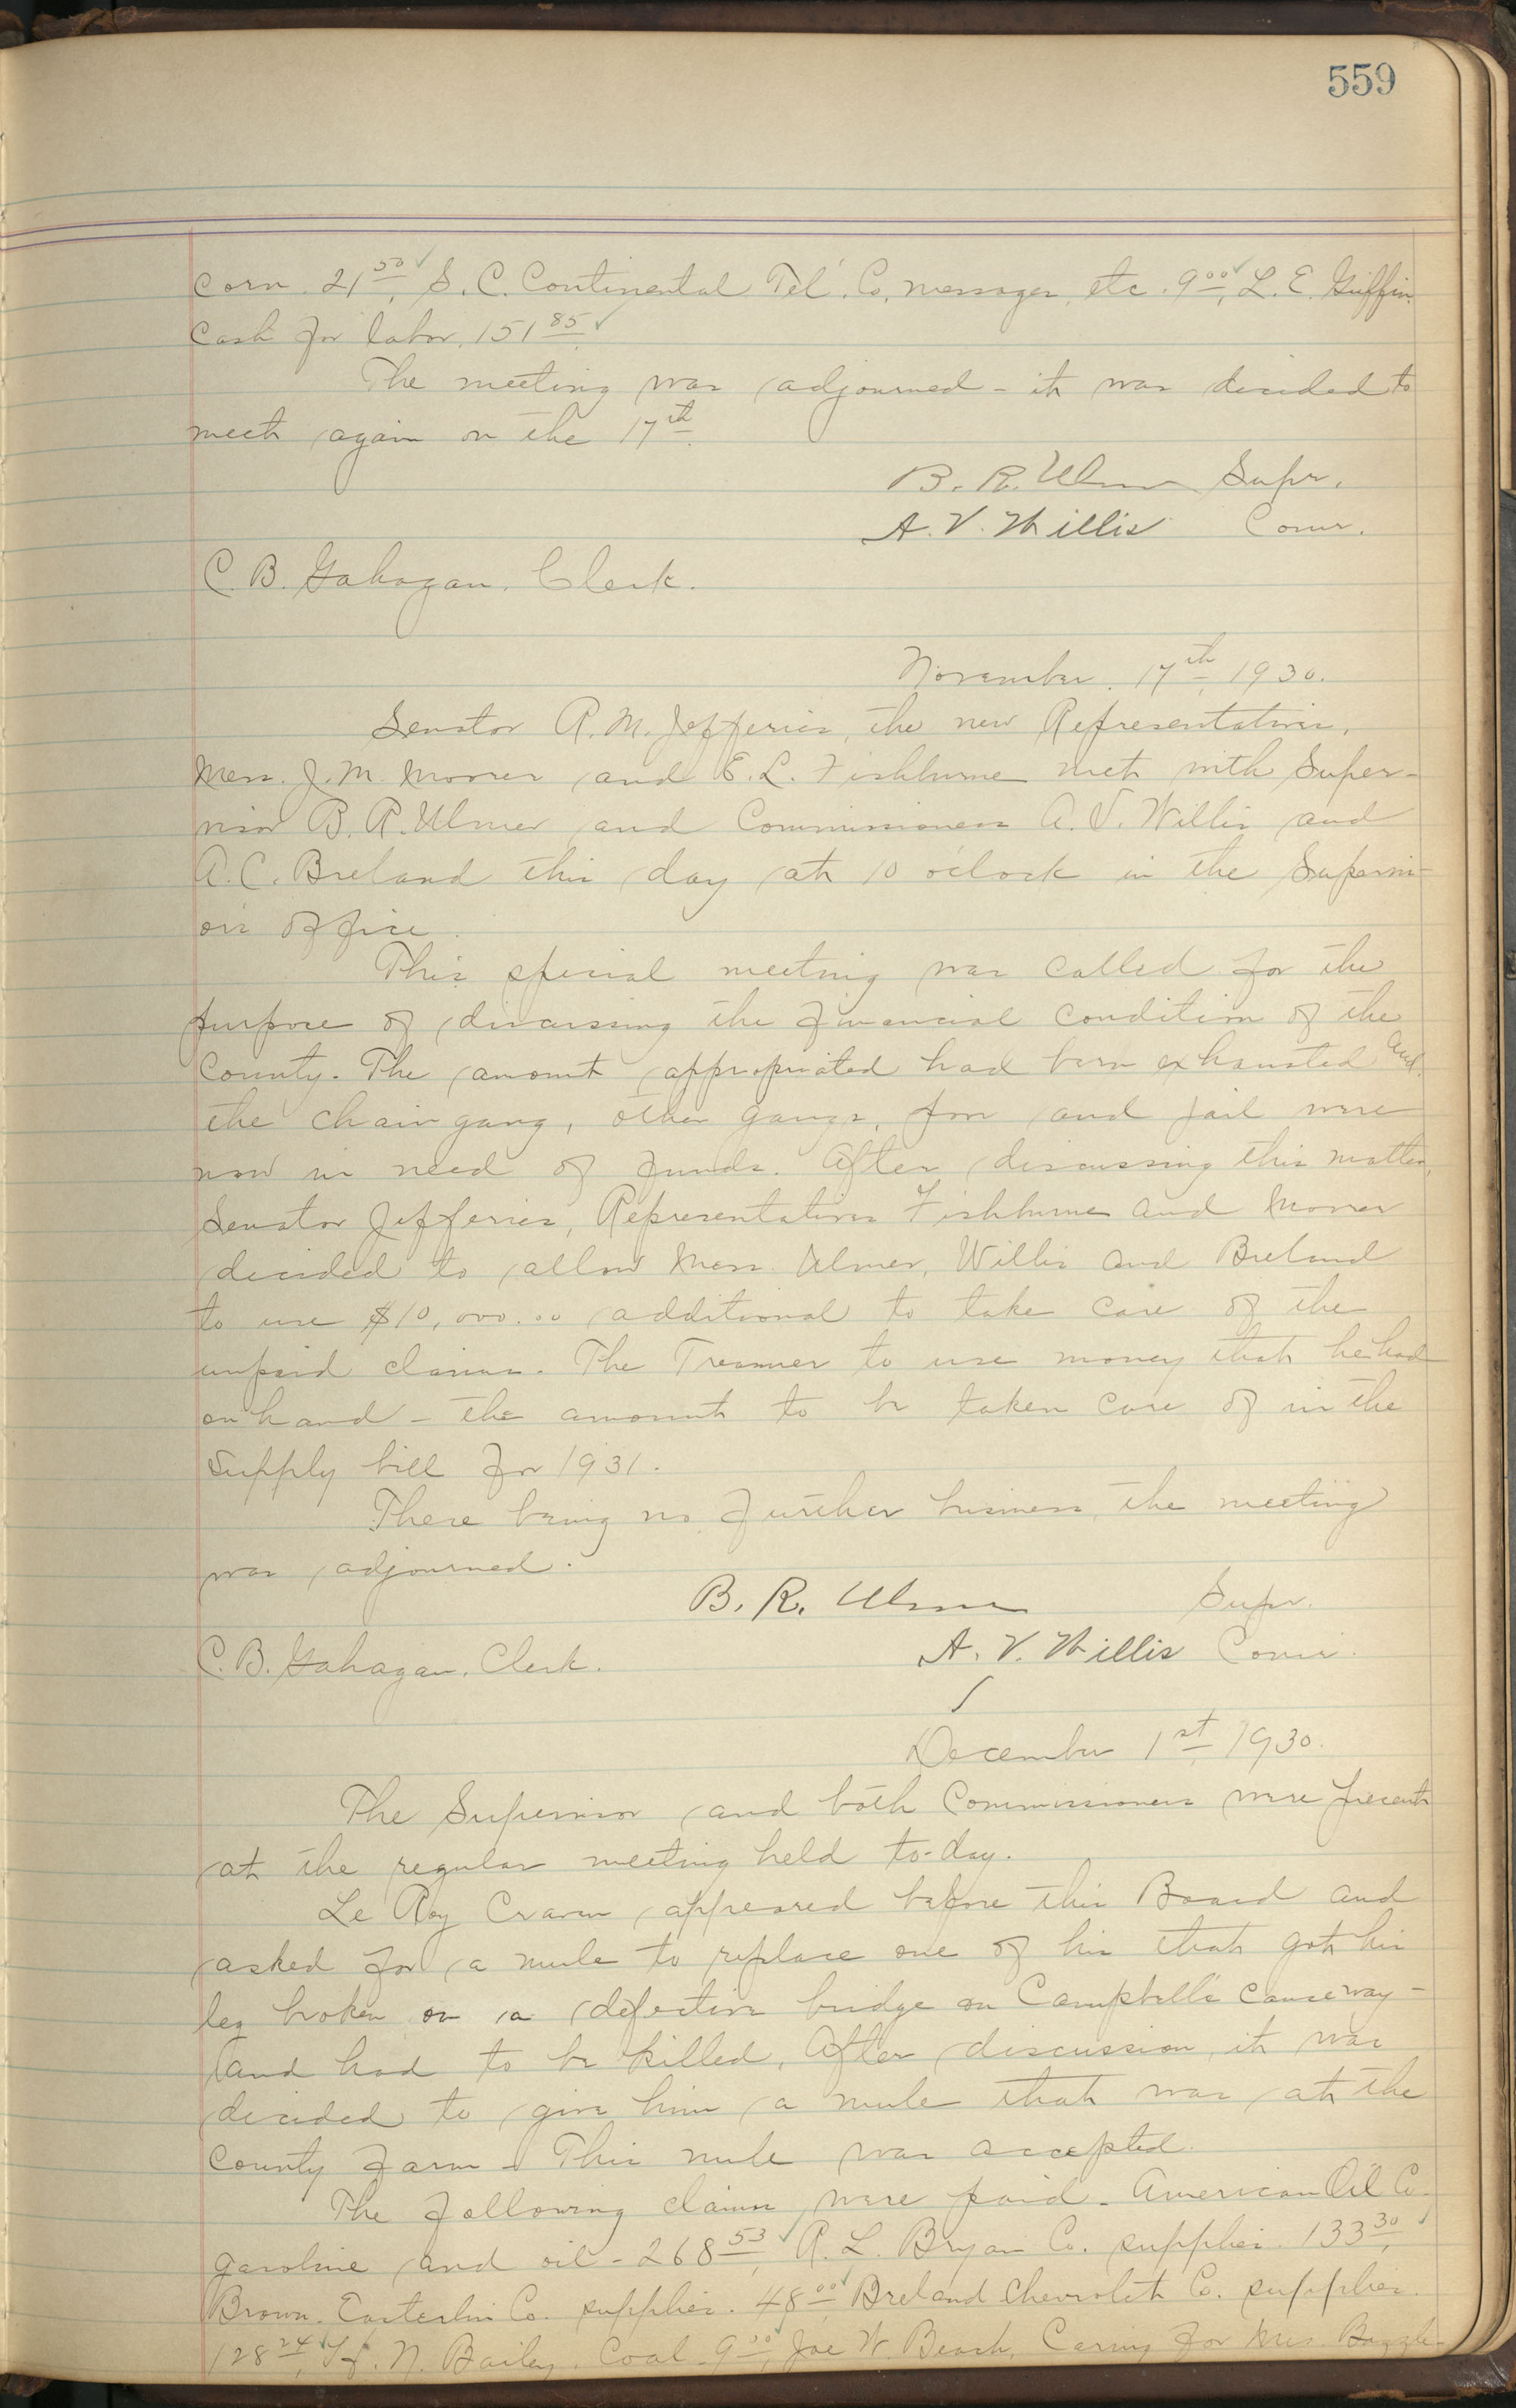 Colleton County Highway Commission Ledger, Page 559